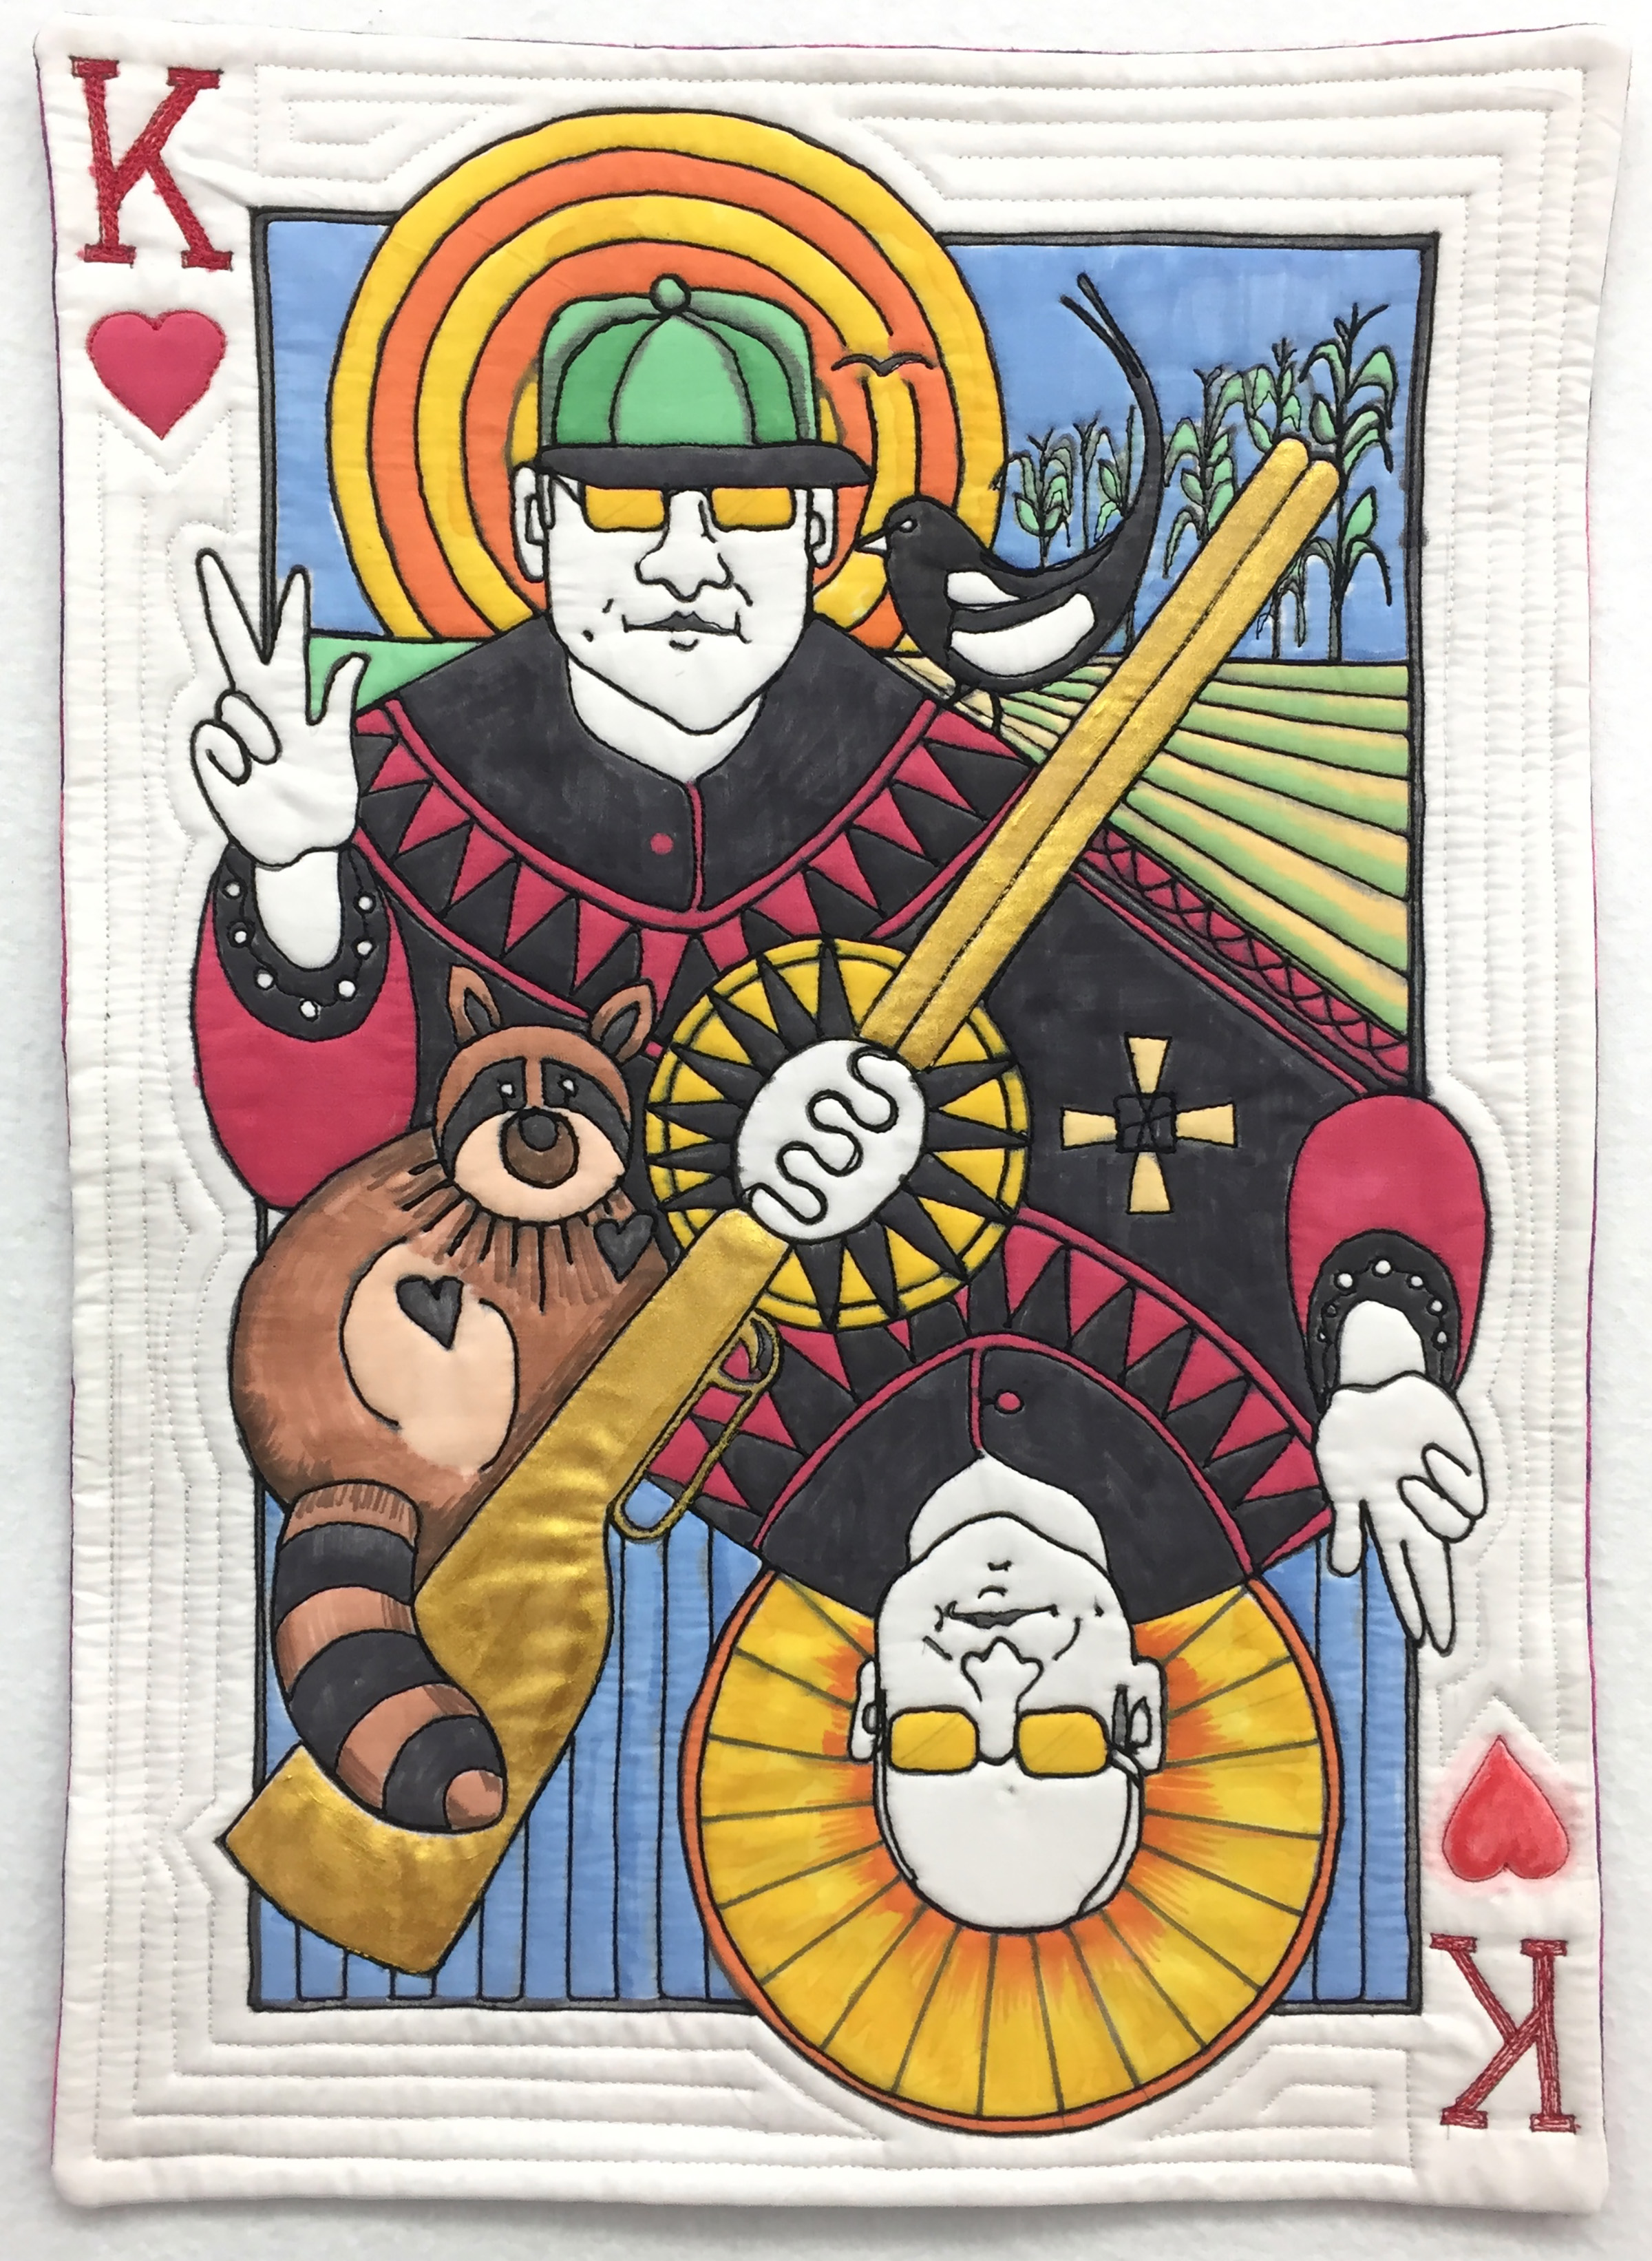 """The King of HEarts - 12"""" x 18"""" – Feb 2019He's a card – the King of Hearts!The host and guardian of Art Quilt Campus held annually at St. Peter's College in Muenster, Saskatchewan, is Father Demetrius - the king of my heart. He is a completely endearing man, serious and spiritual on one side, funny and whimsical on the other. I've depicted these traits along with my interpretation of him as The Protector of Corn, this from a memorable account of his efforts to keep raccoons and magpies from his cornfields."""